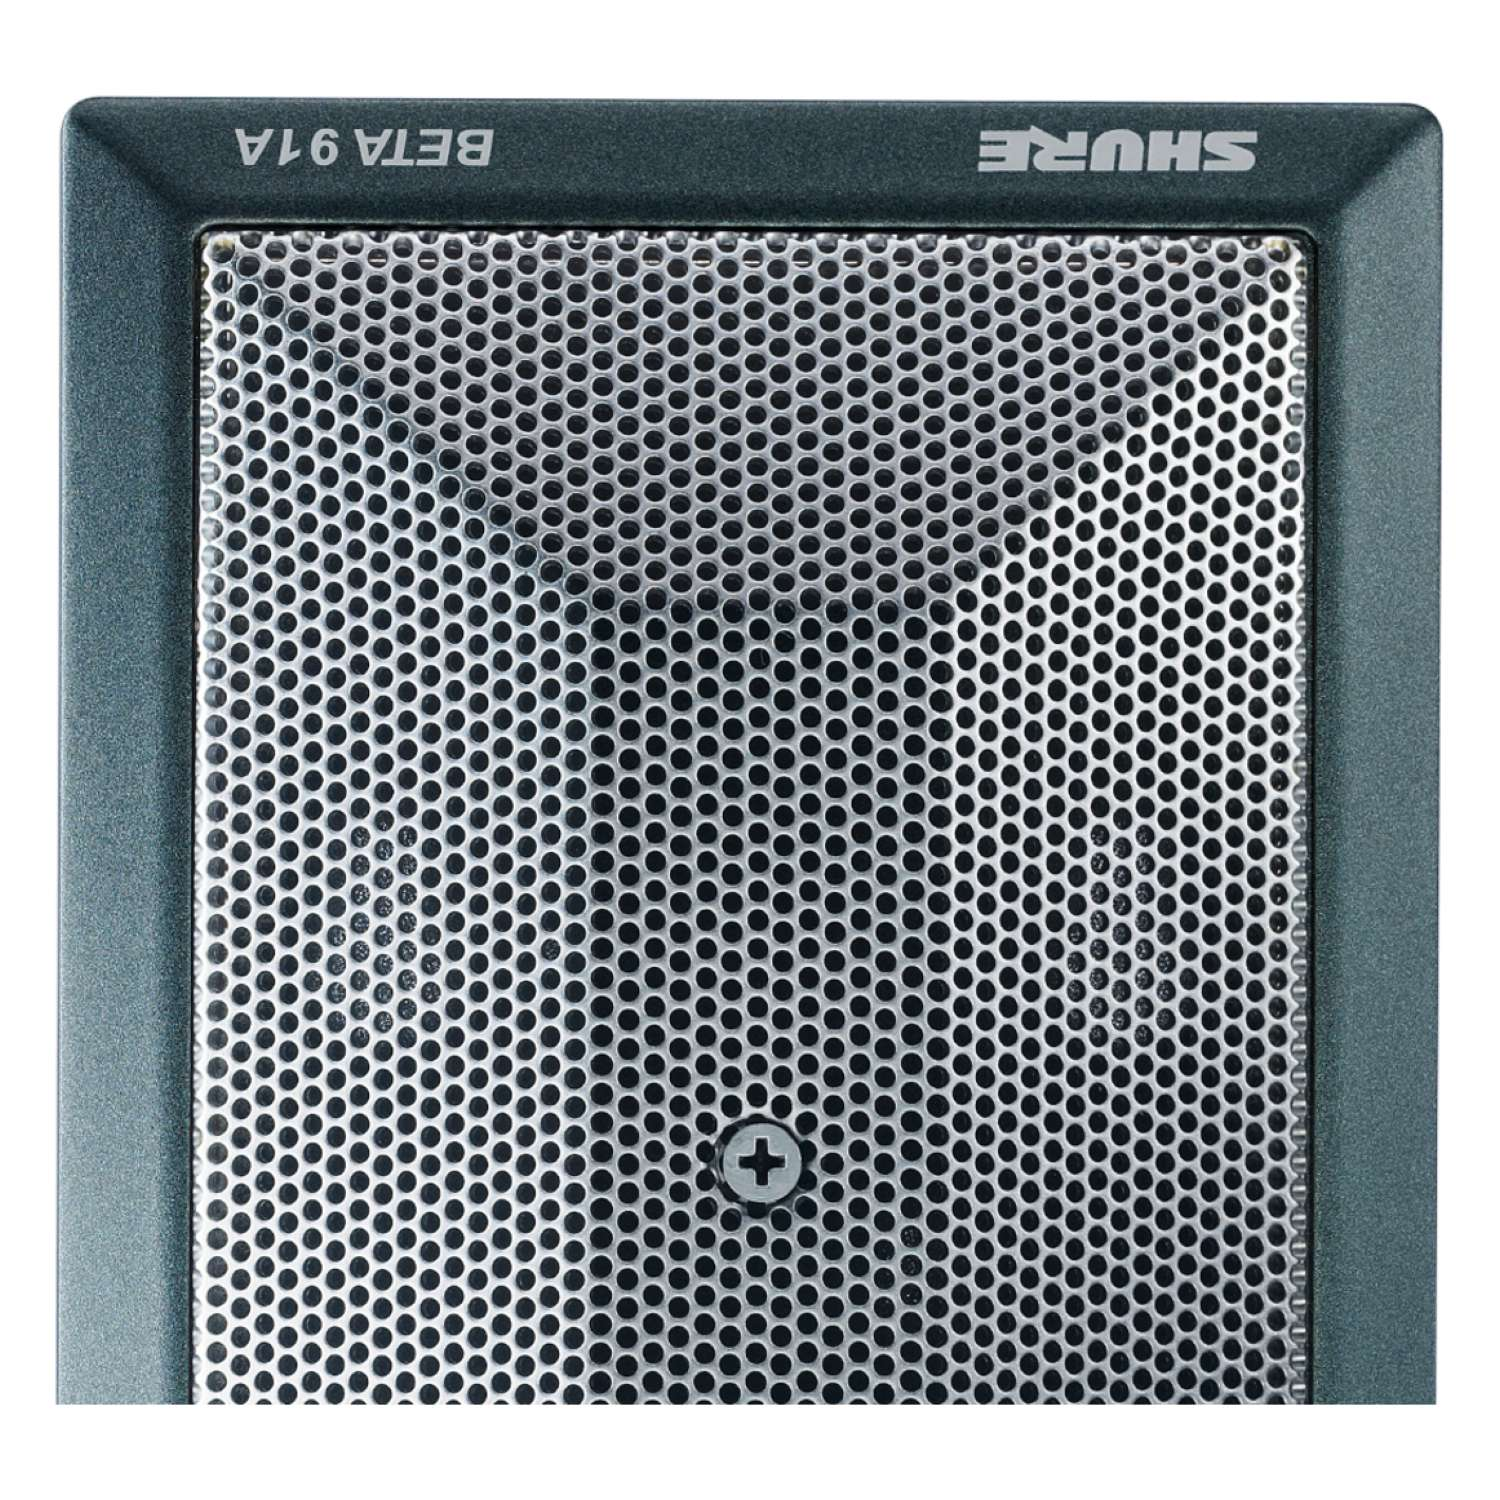 Shure BETA91A Cardioid Condenser Boundary Microphone 3